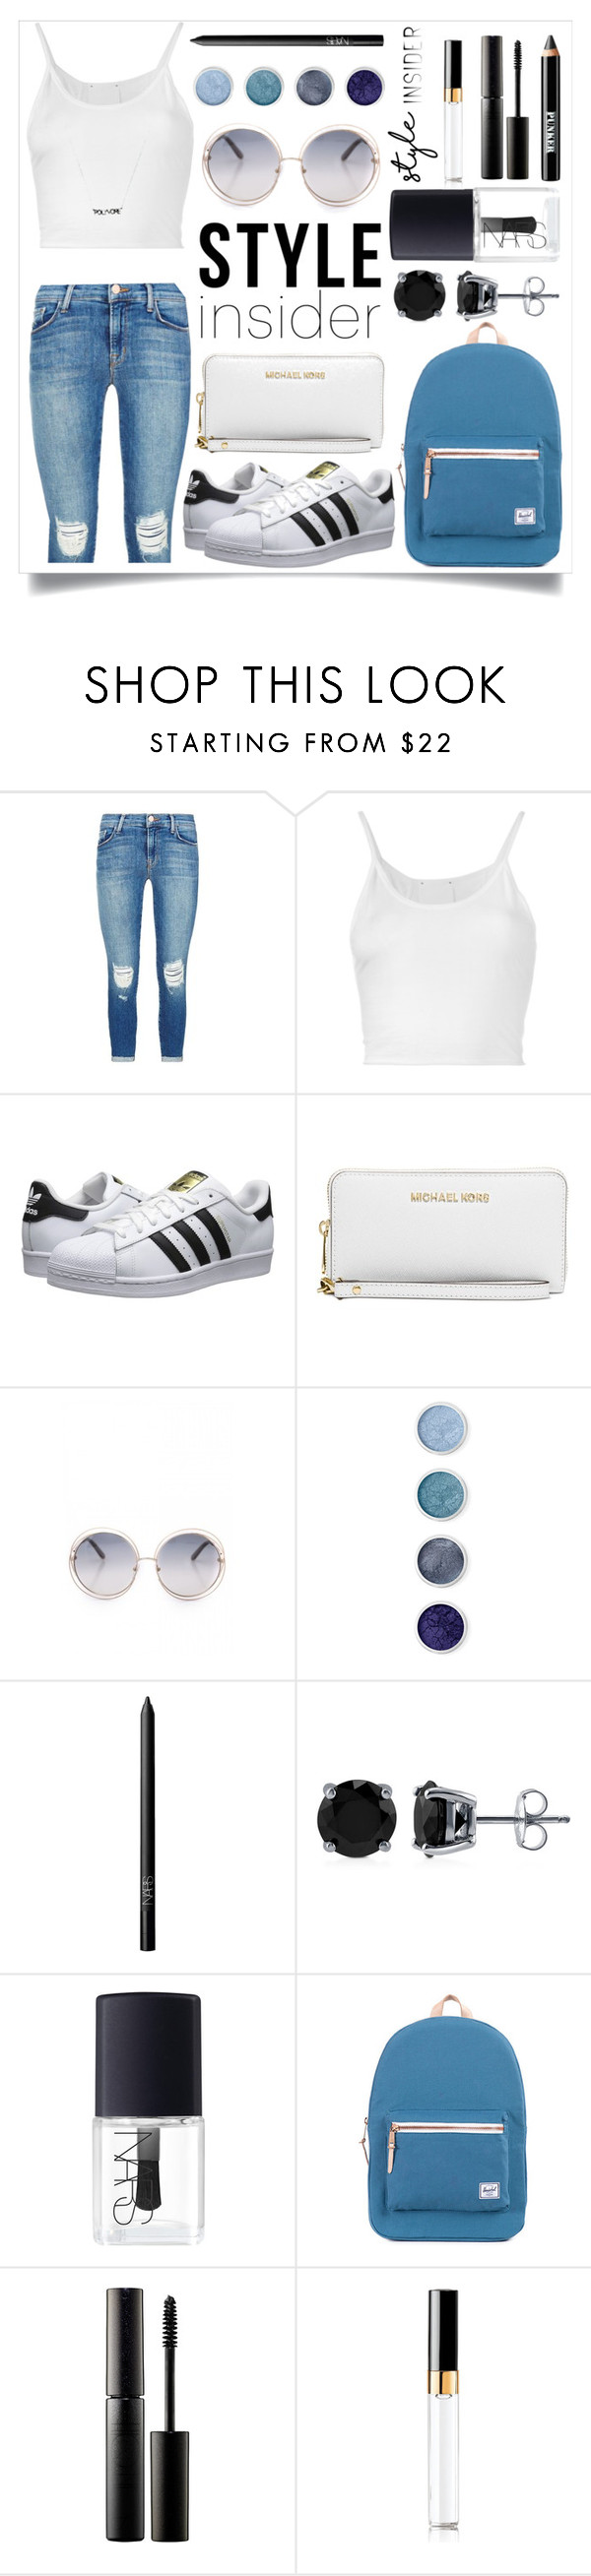 """""""Simple Style"""" by iredud16 ❤ liked on Polyvore featuring J Brand, Lost & Found, adidas Originals, Michael Kors, Terre Mère, NARS Cosmetics, BERRICLE, Surratt, Chanel and Ardency Inn"""